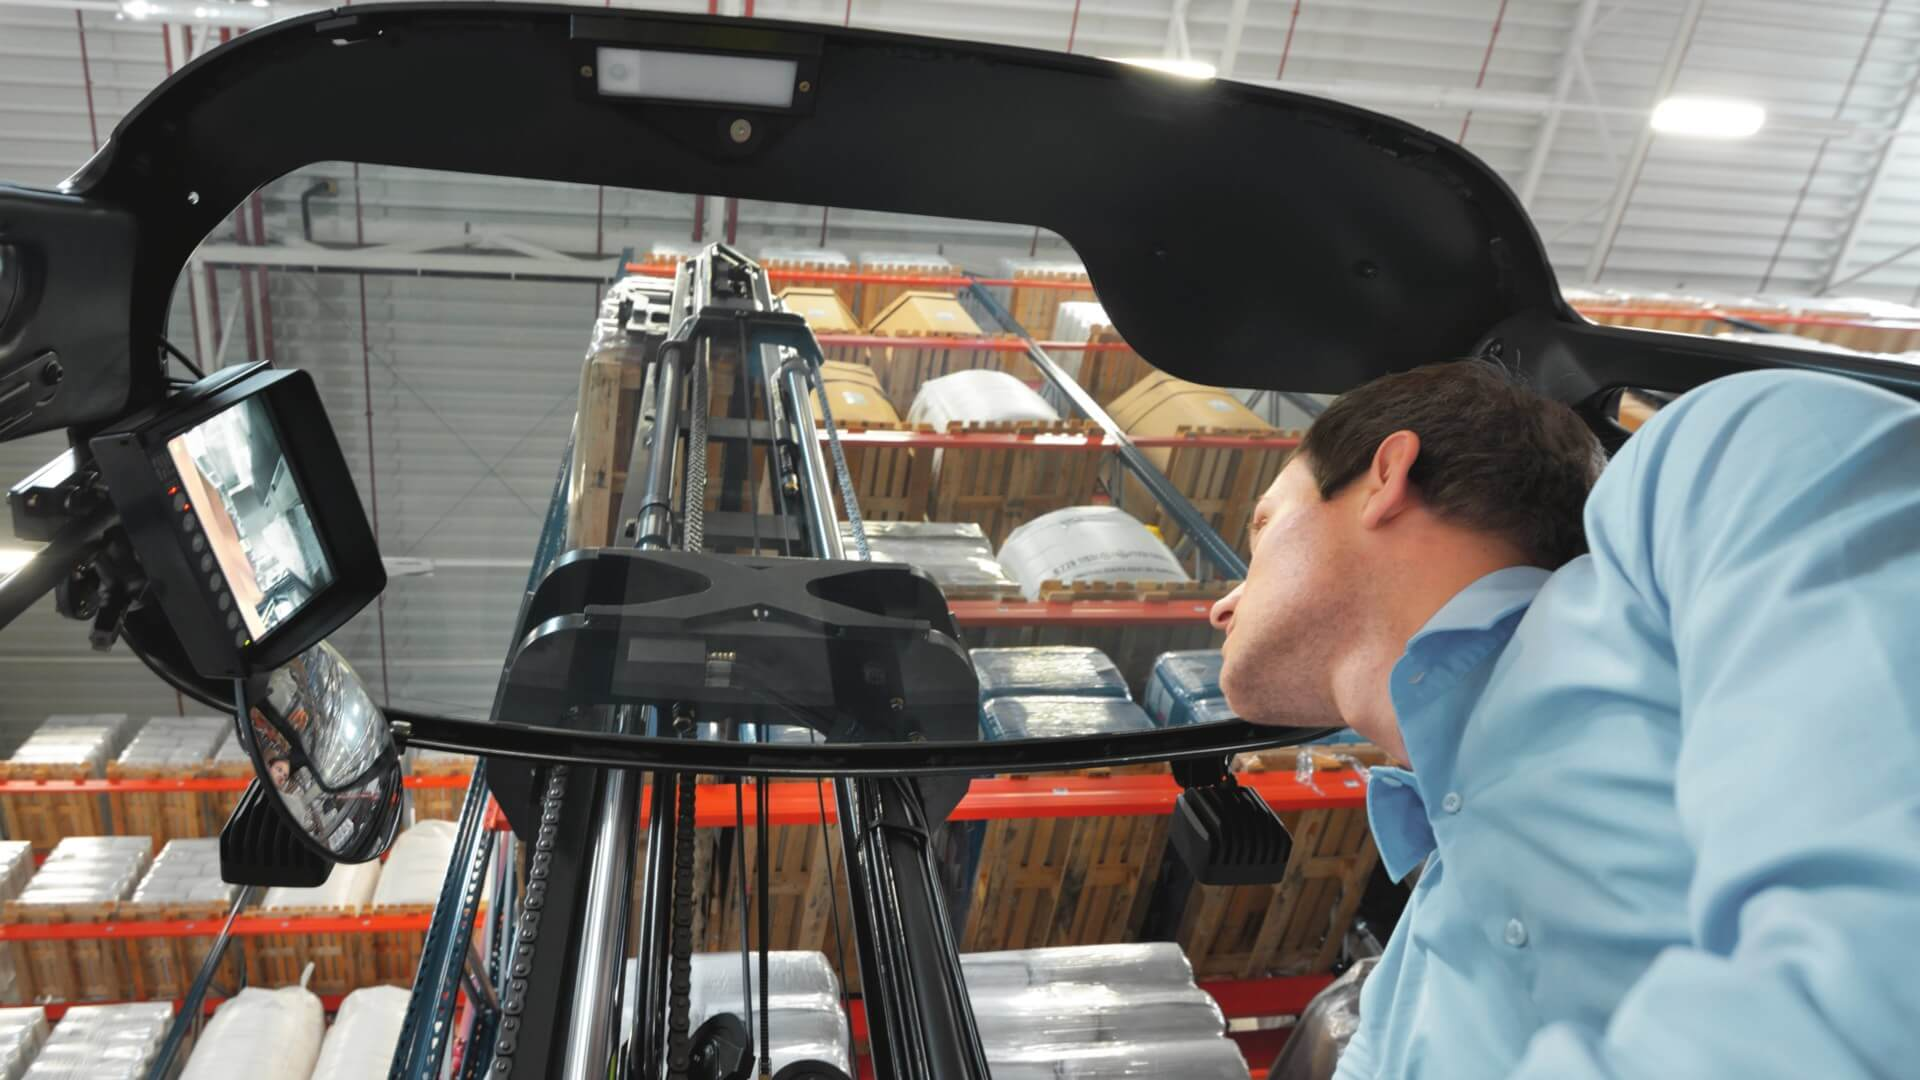 Linde reach truck with glass roof